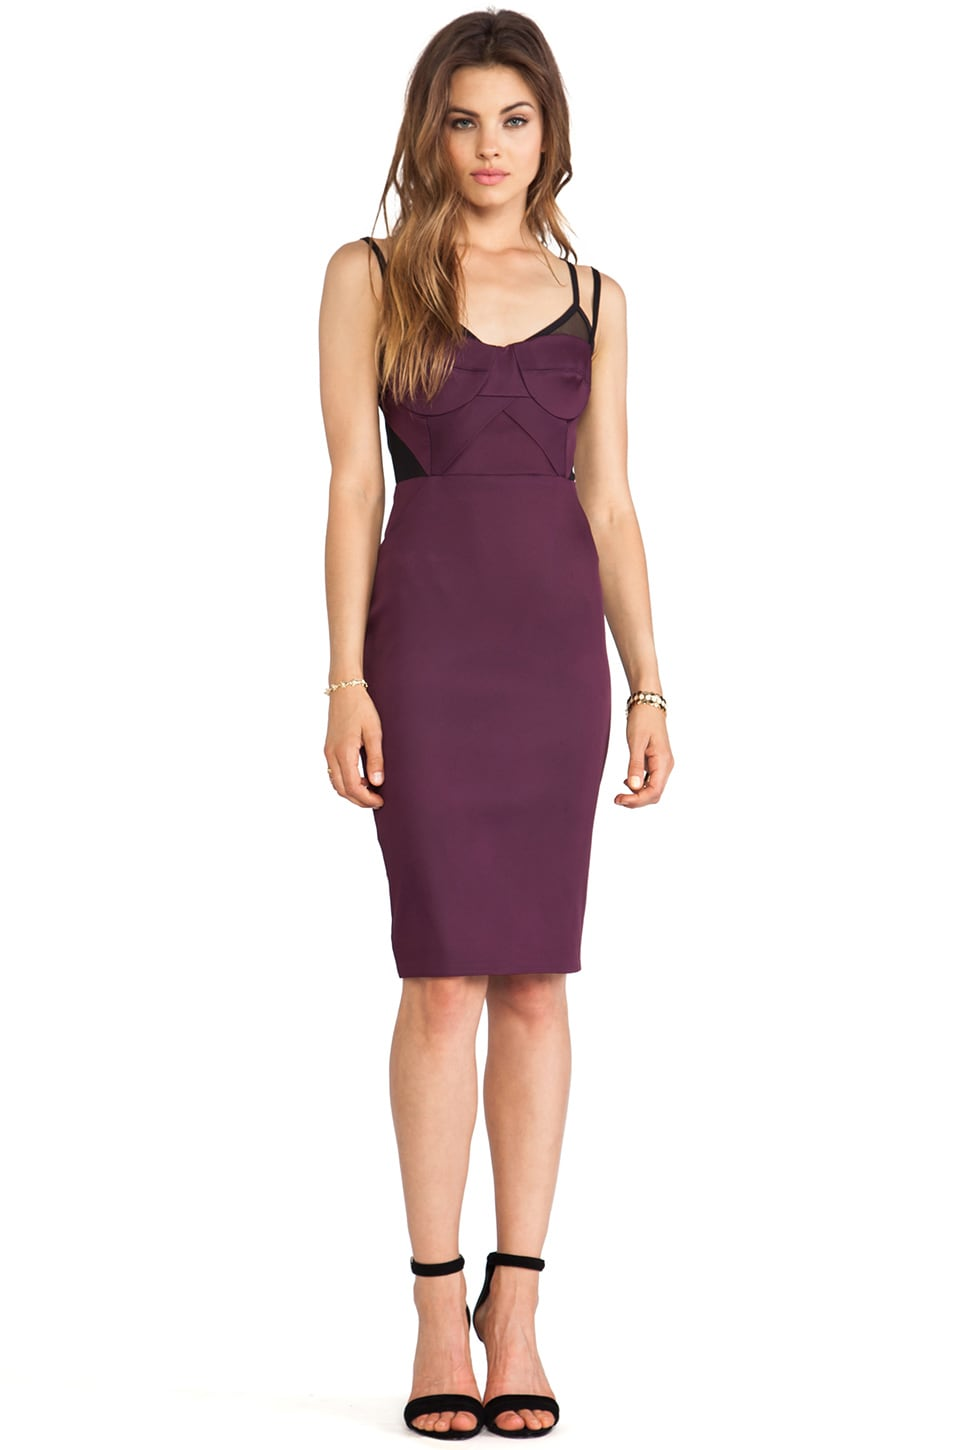 BEC&BRIDGE Helena Bustier Dress in Plum